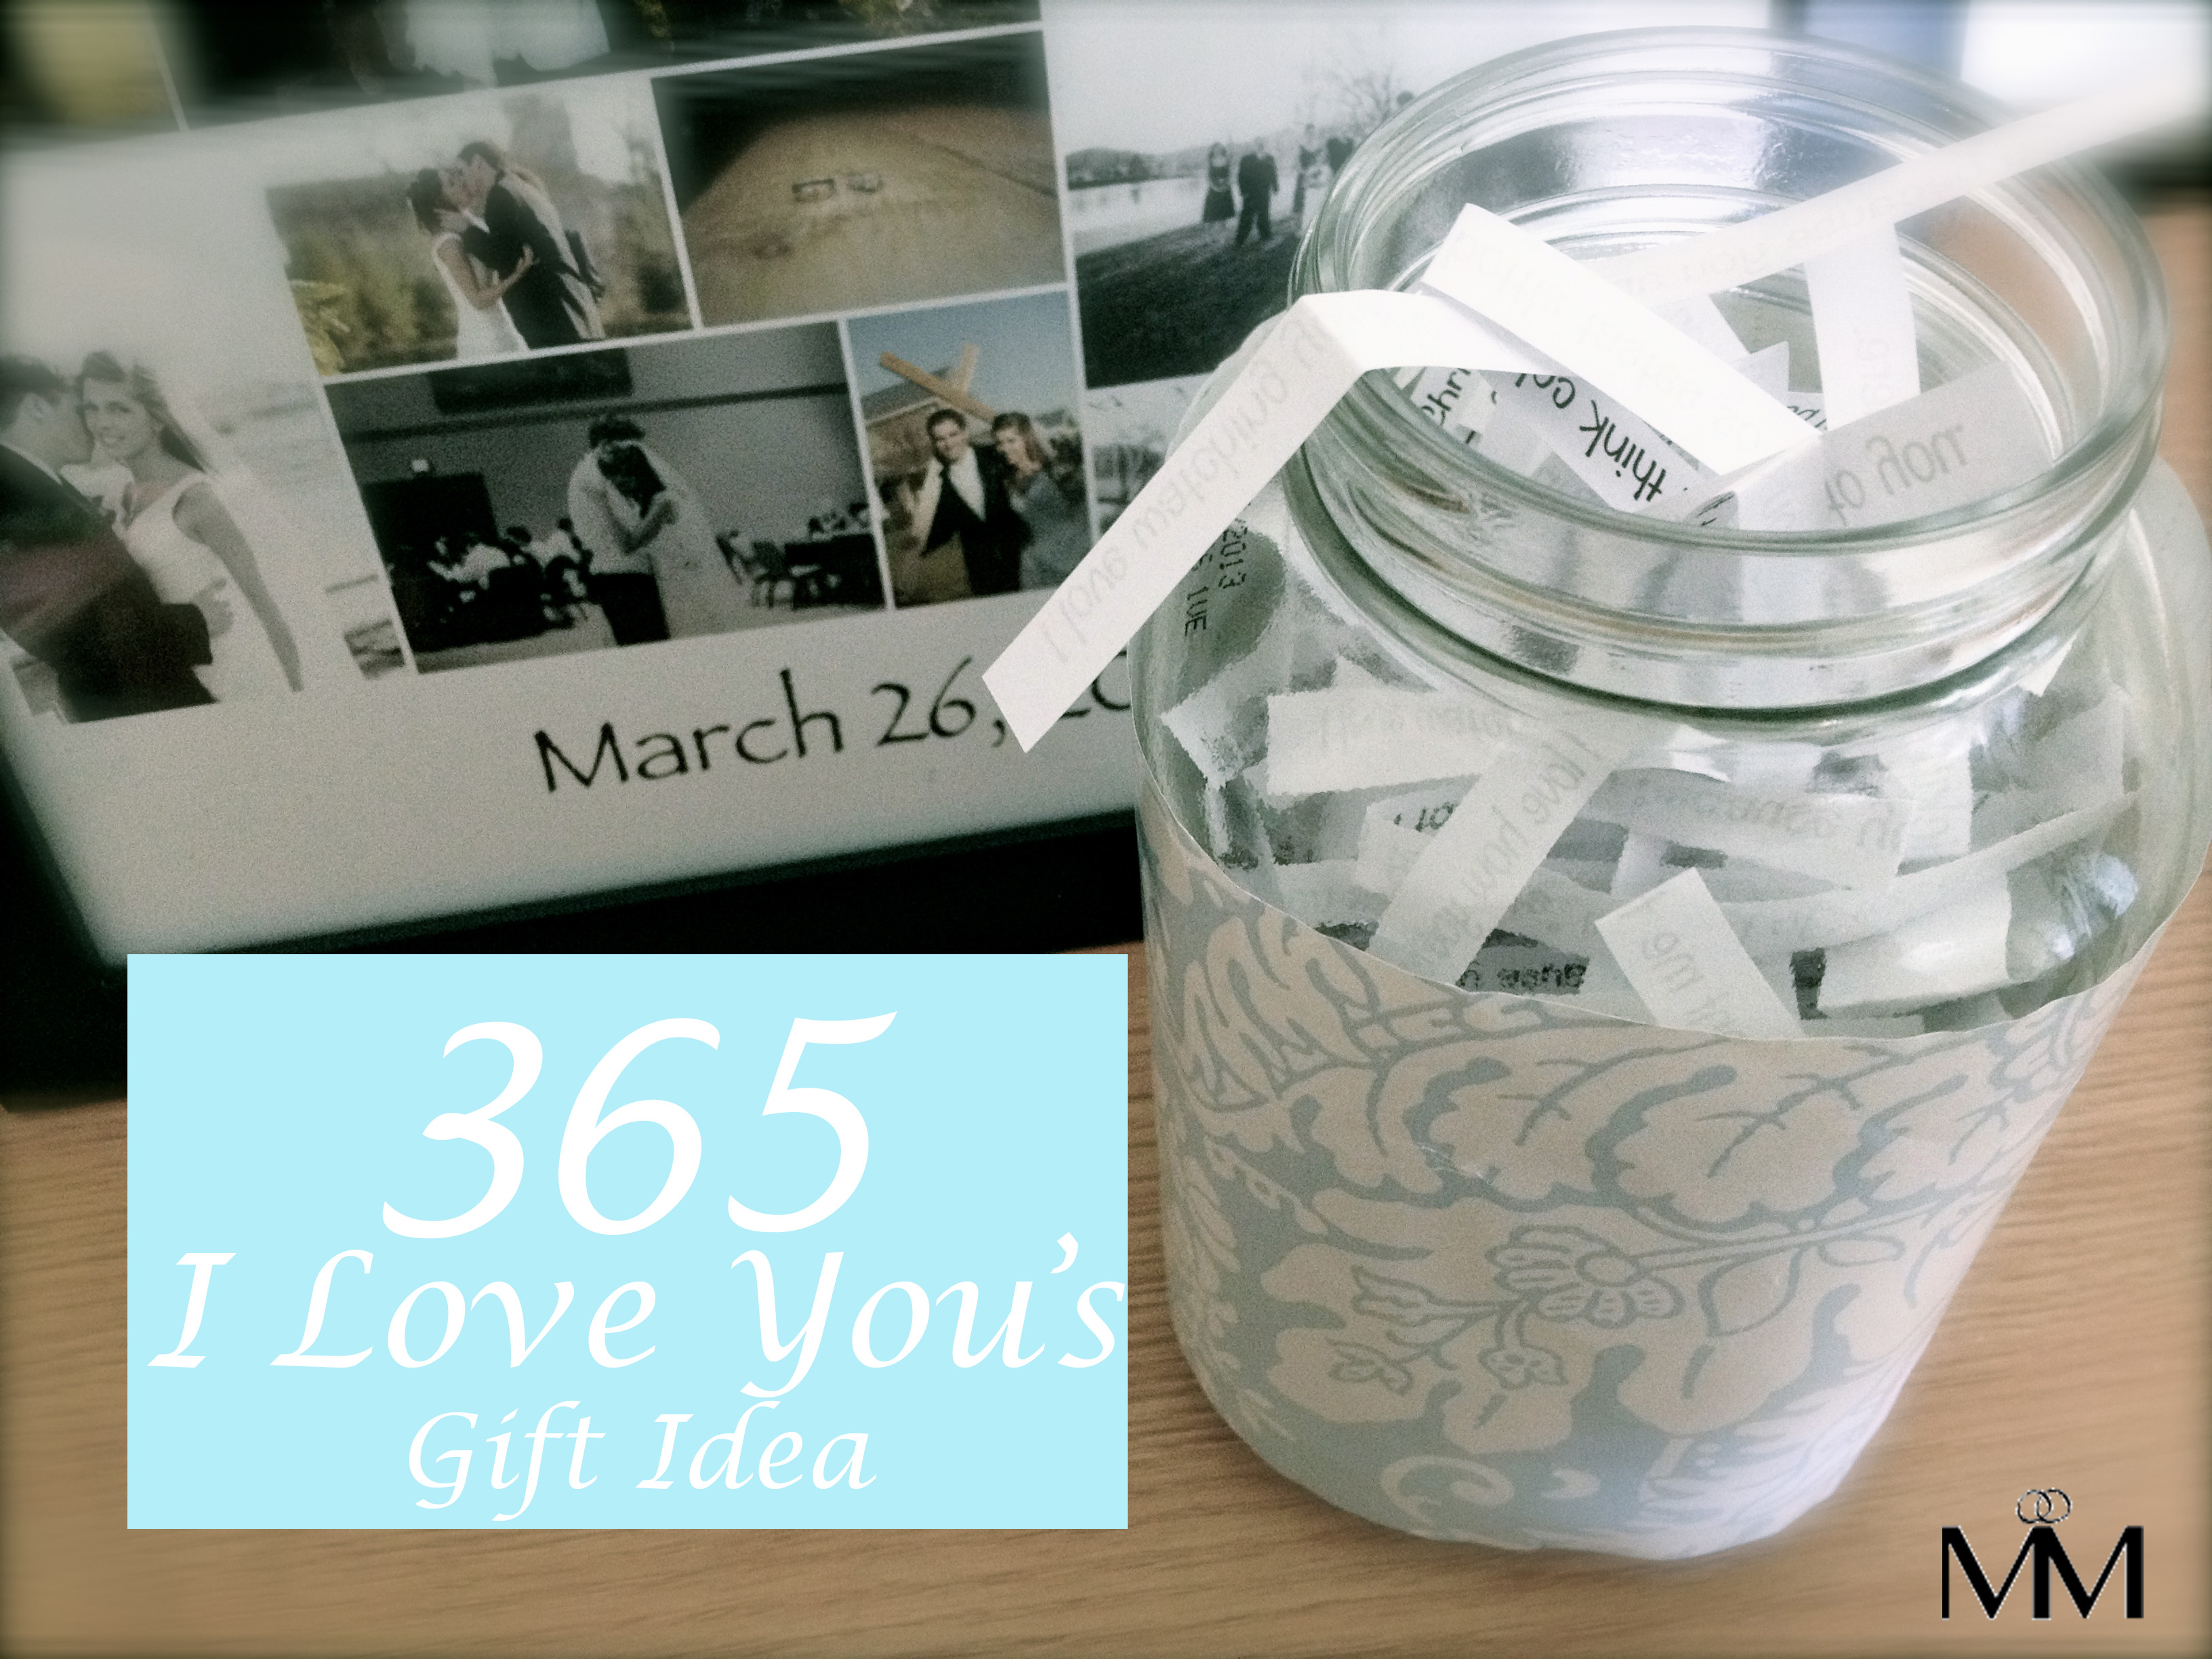 diy 2 year anniversary gift idea - the 365 reasons why i love you